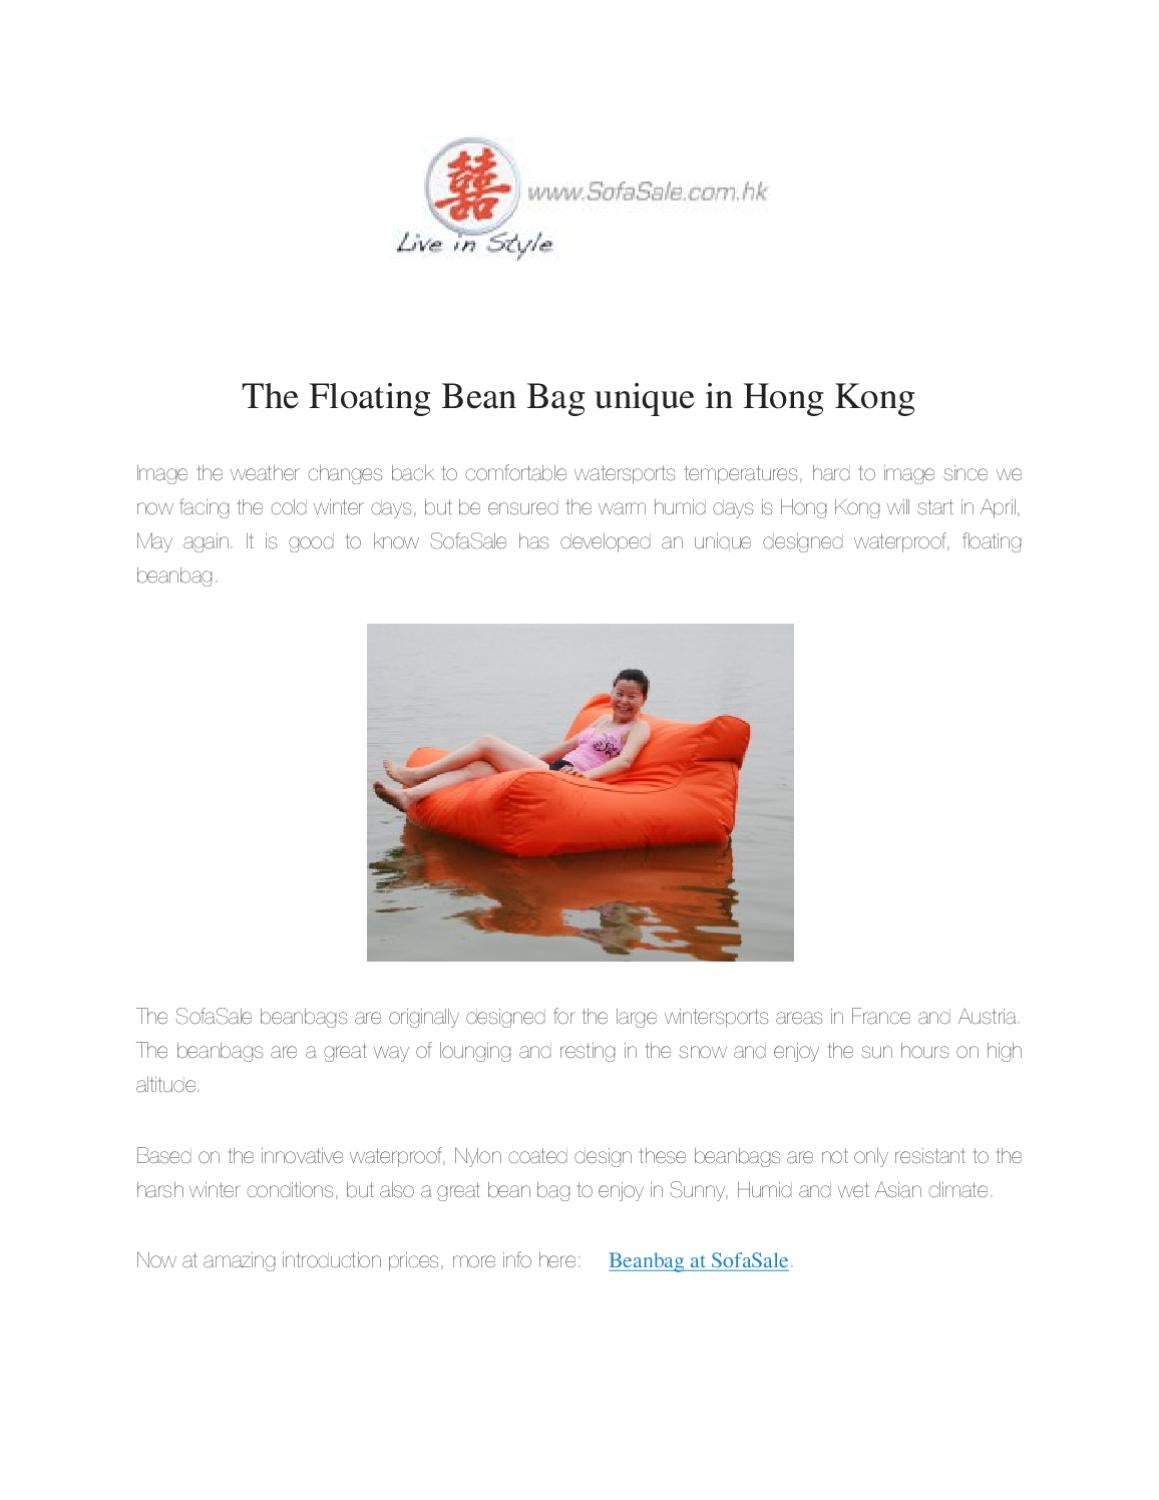 Astonishing Sofasale Floating Bean Bag Unique In Hong Kong By Prawesh Pdpeps Interior Chair Design Pdpepsorg